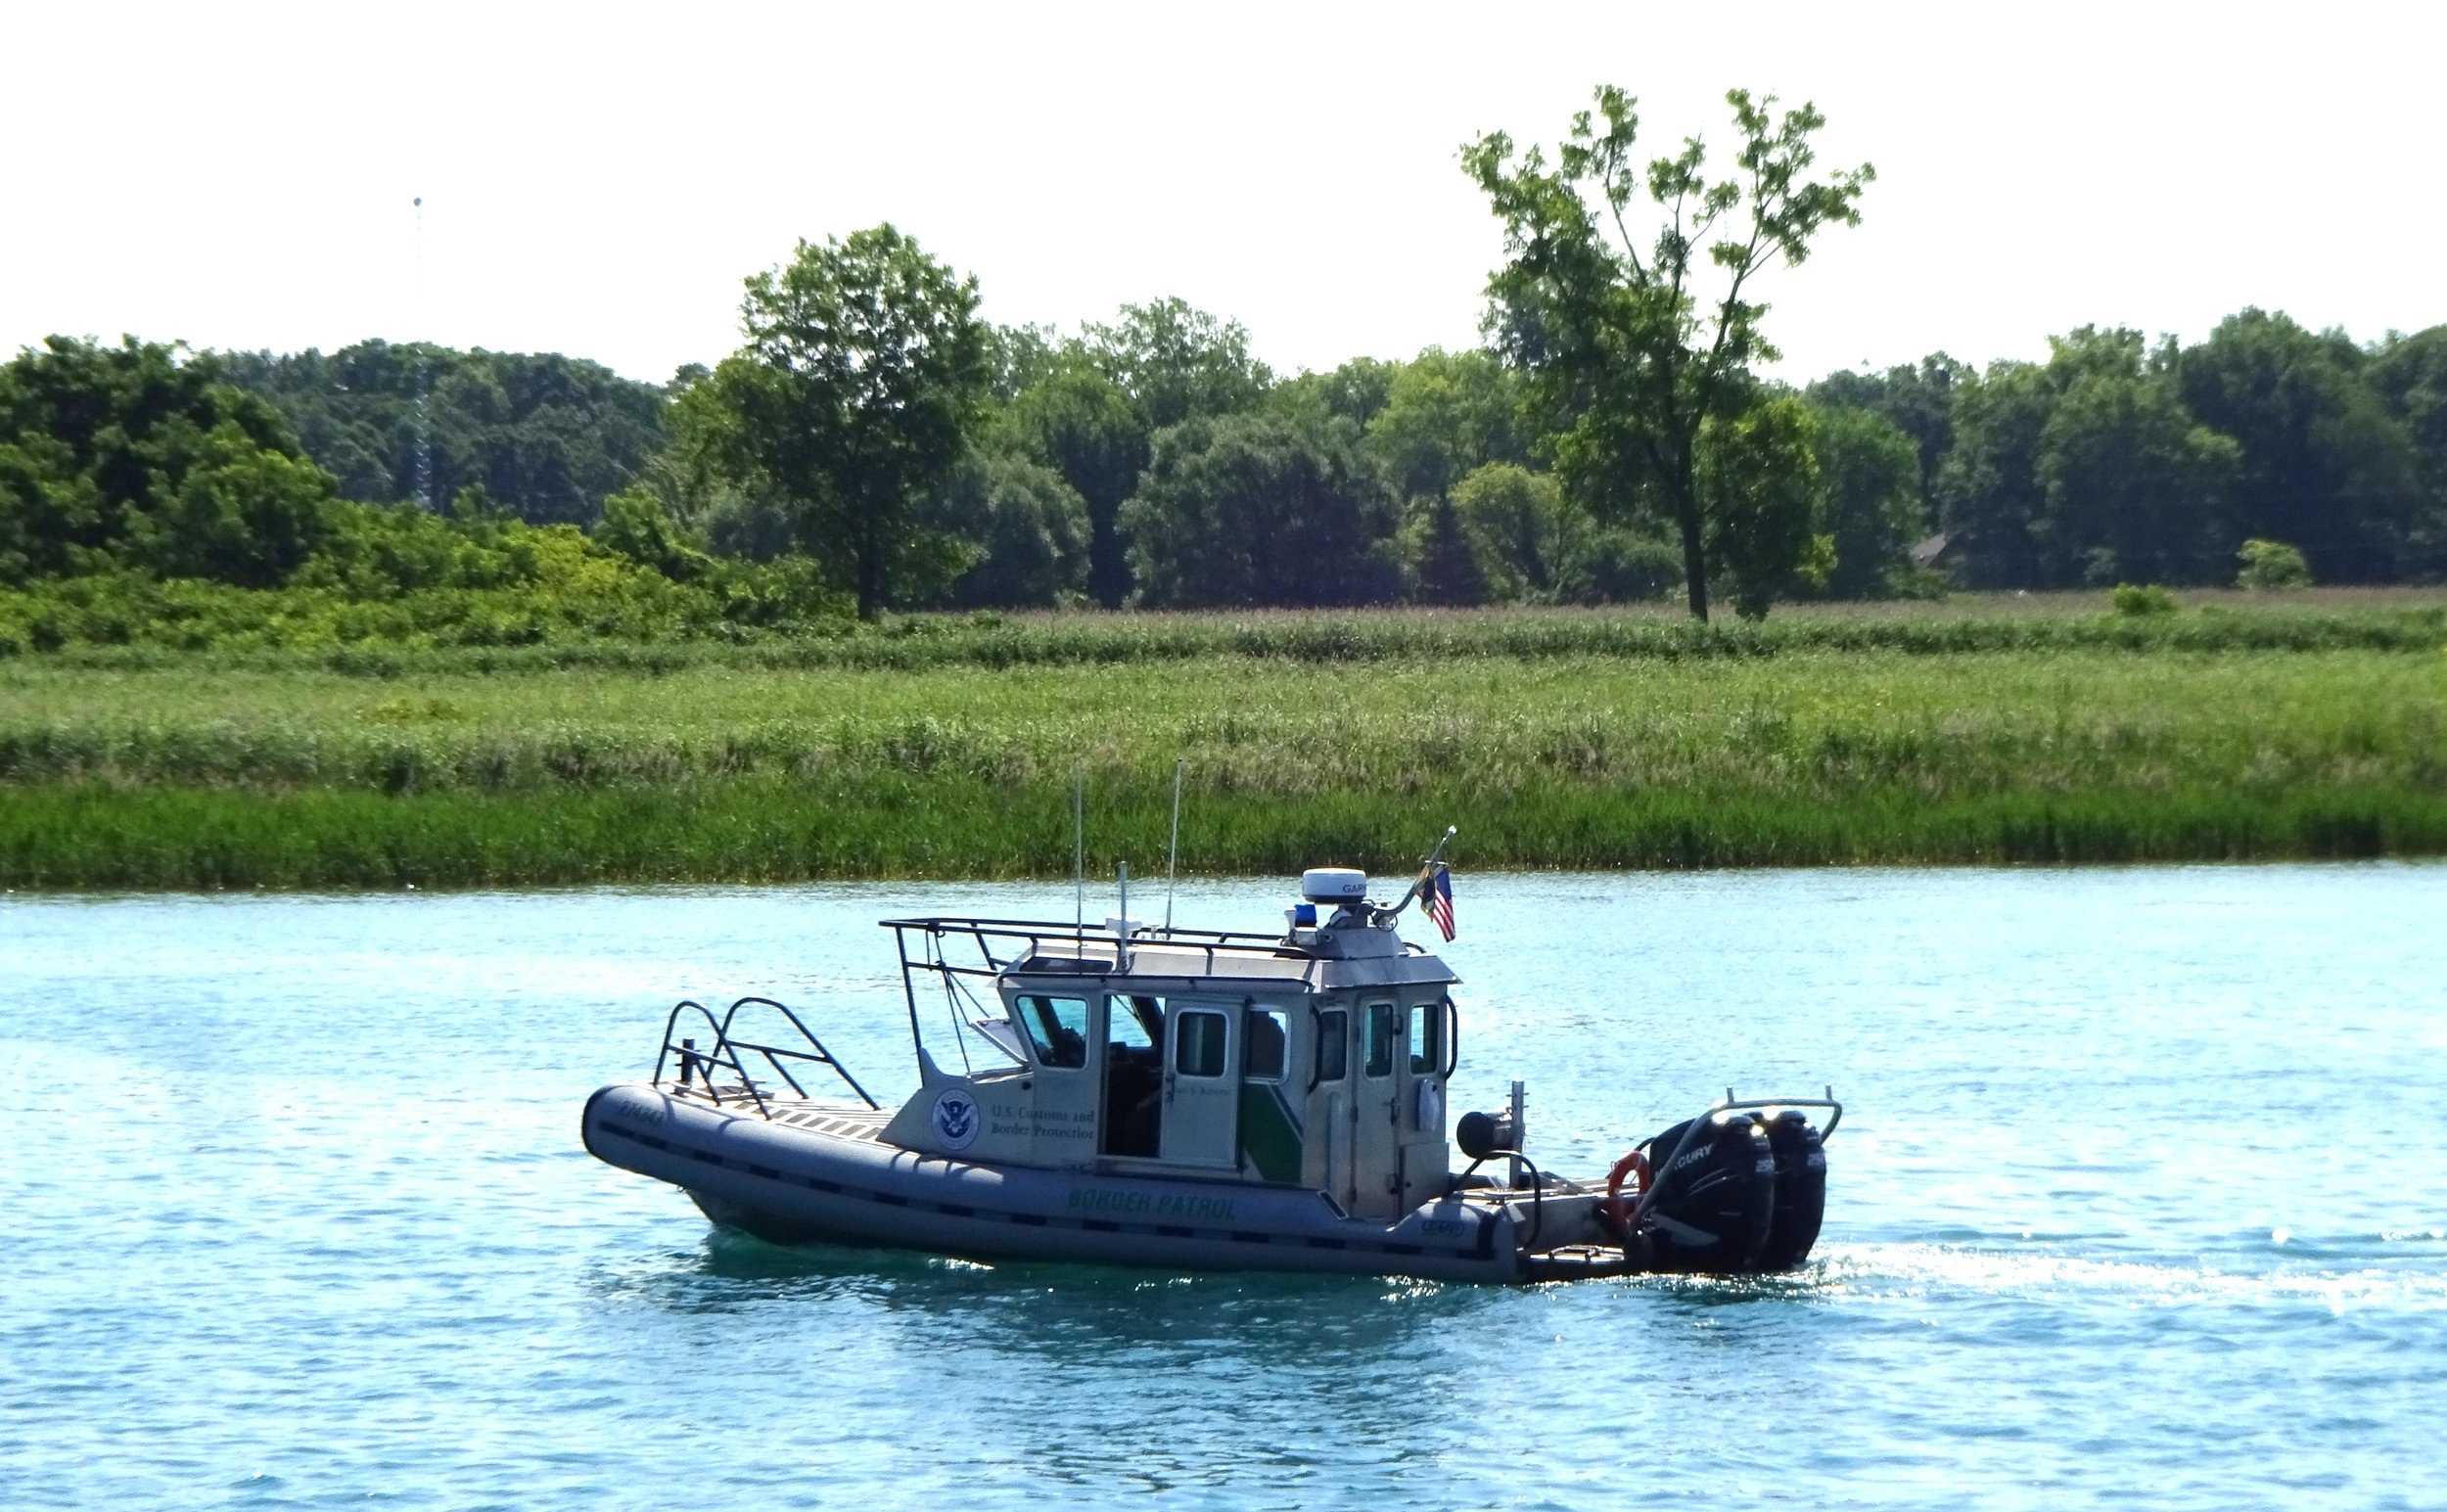 U.S. Border Patrol along the St. Clair River. Photo by Larry McCullough